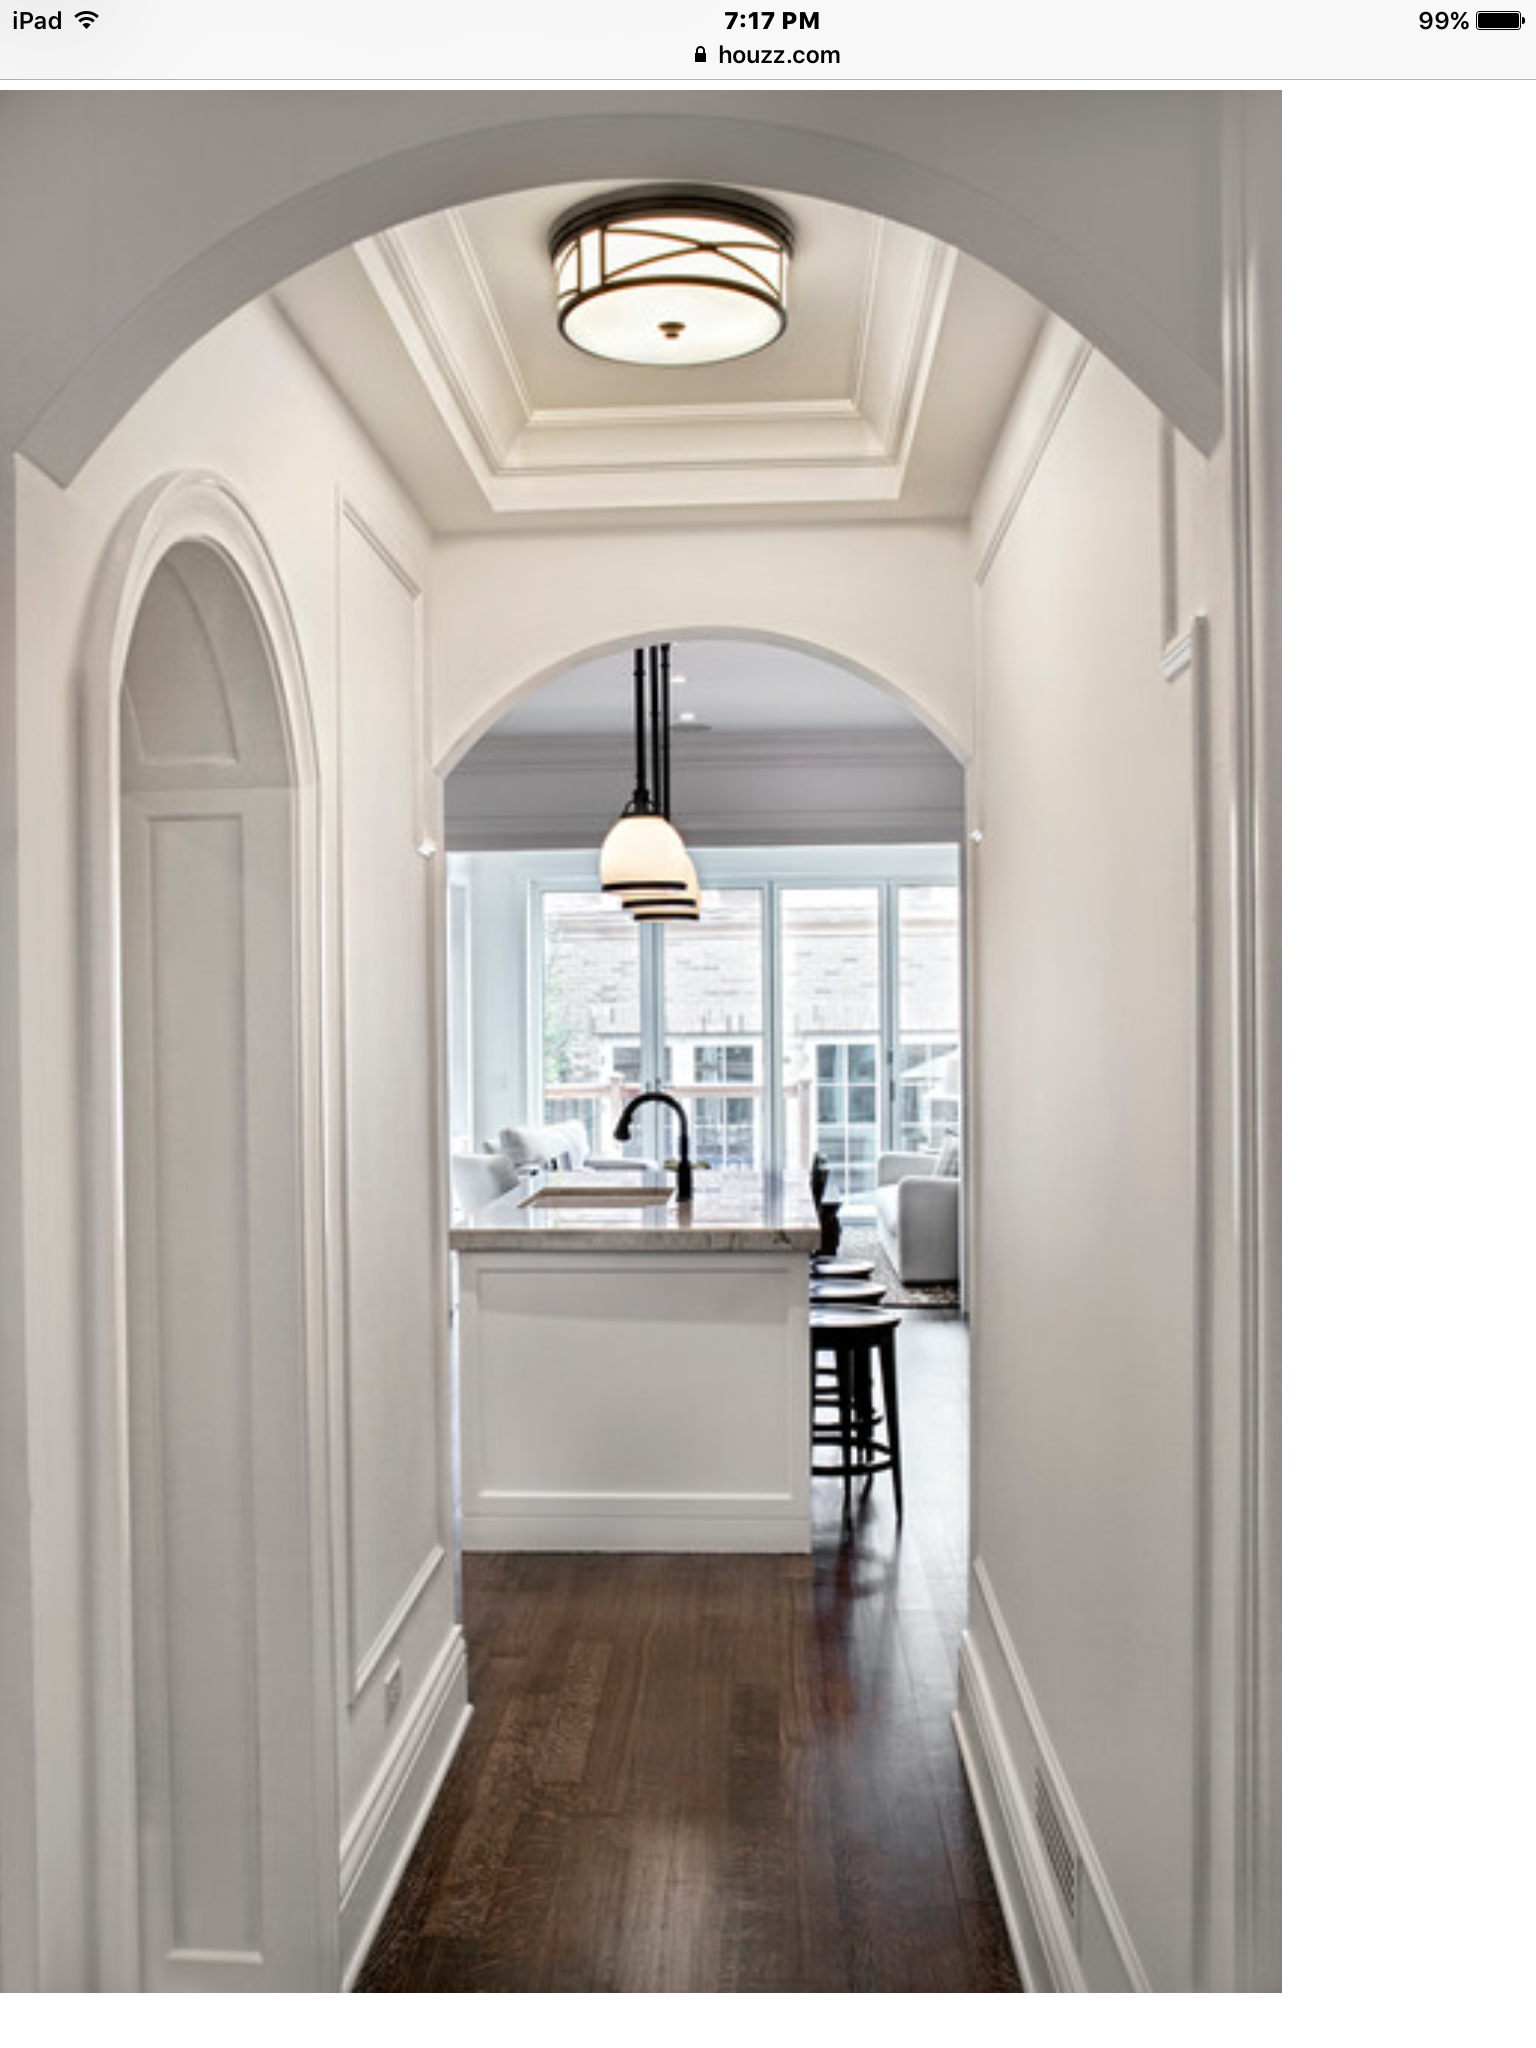 Wood trim on walls in hallways....nice touch! Small